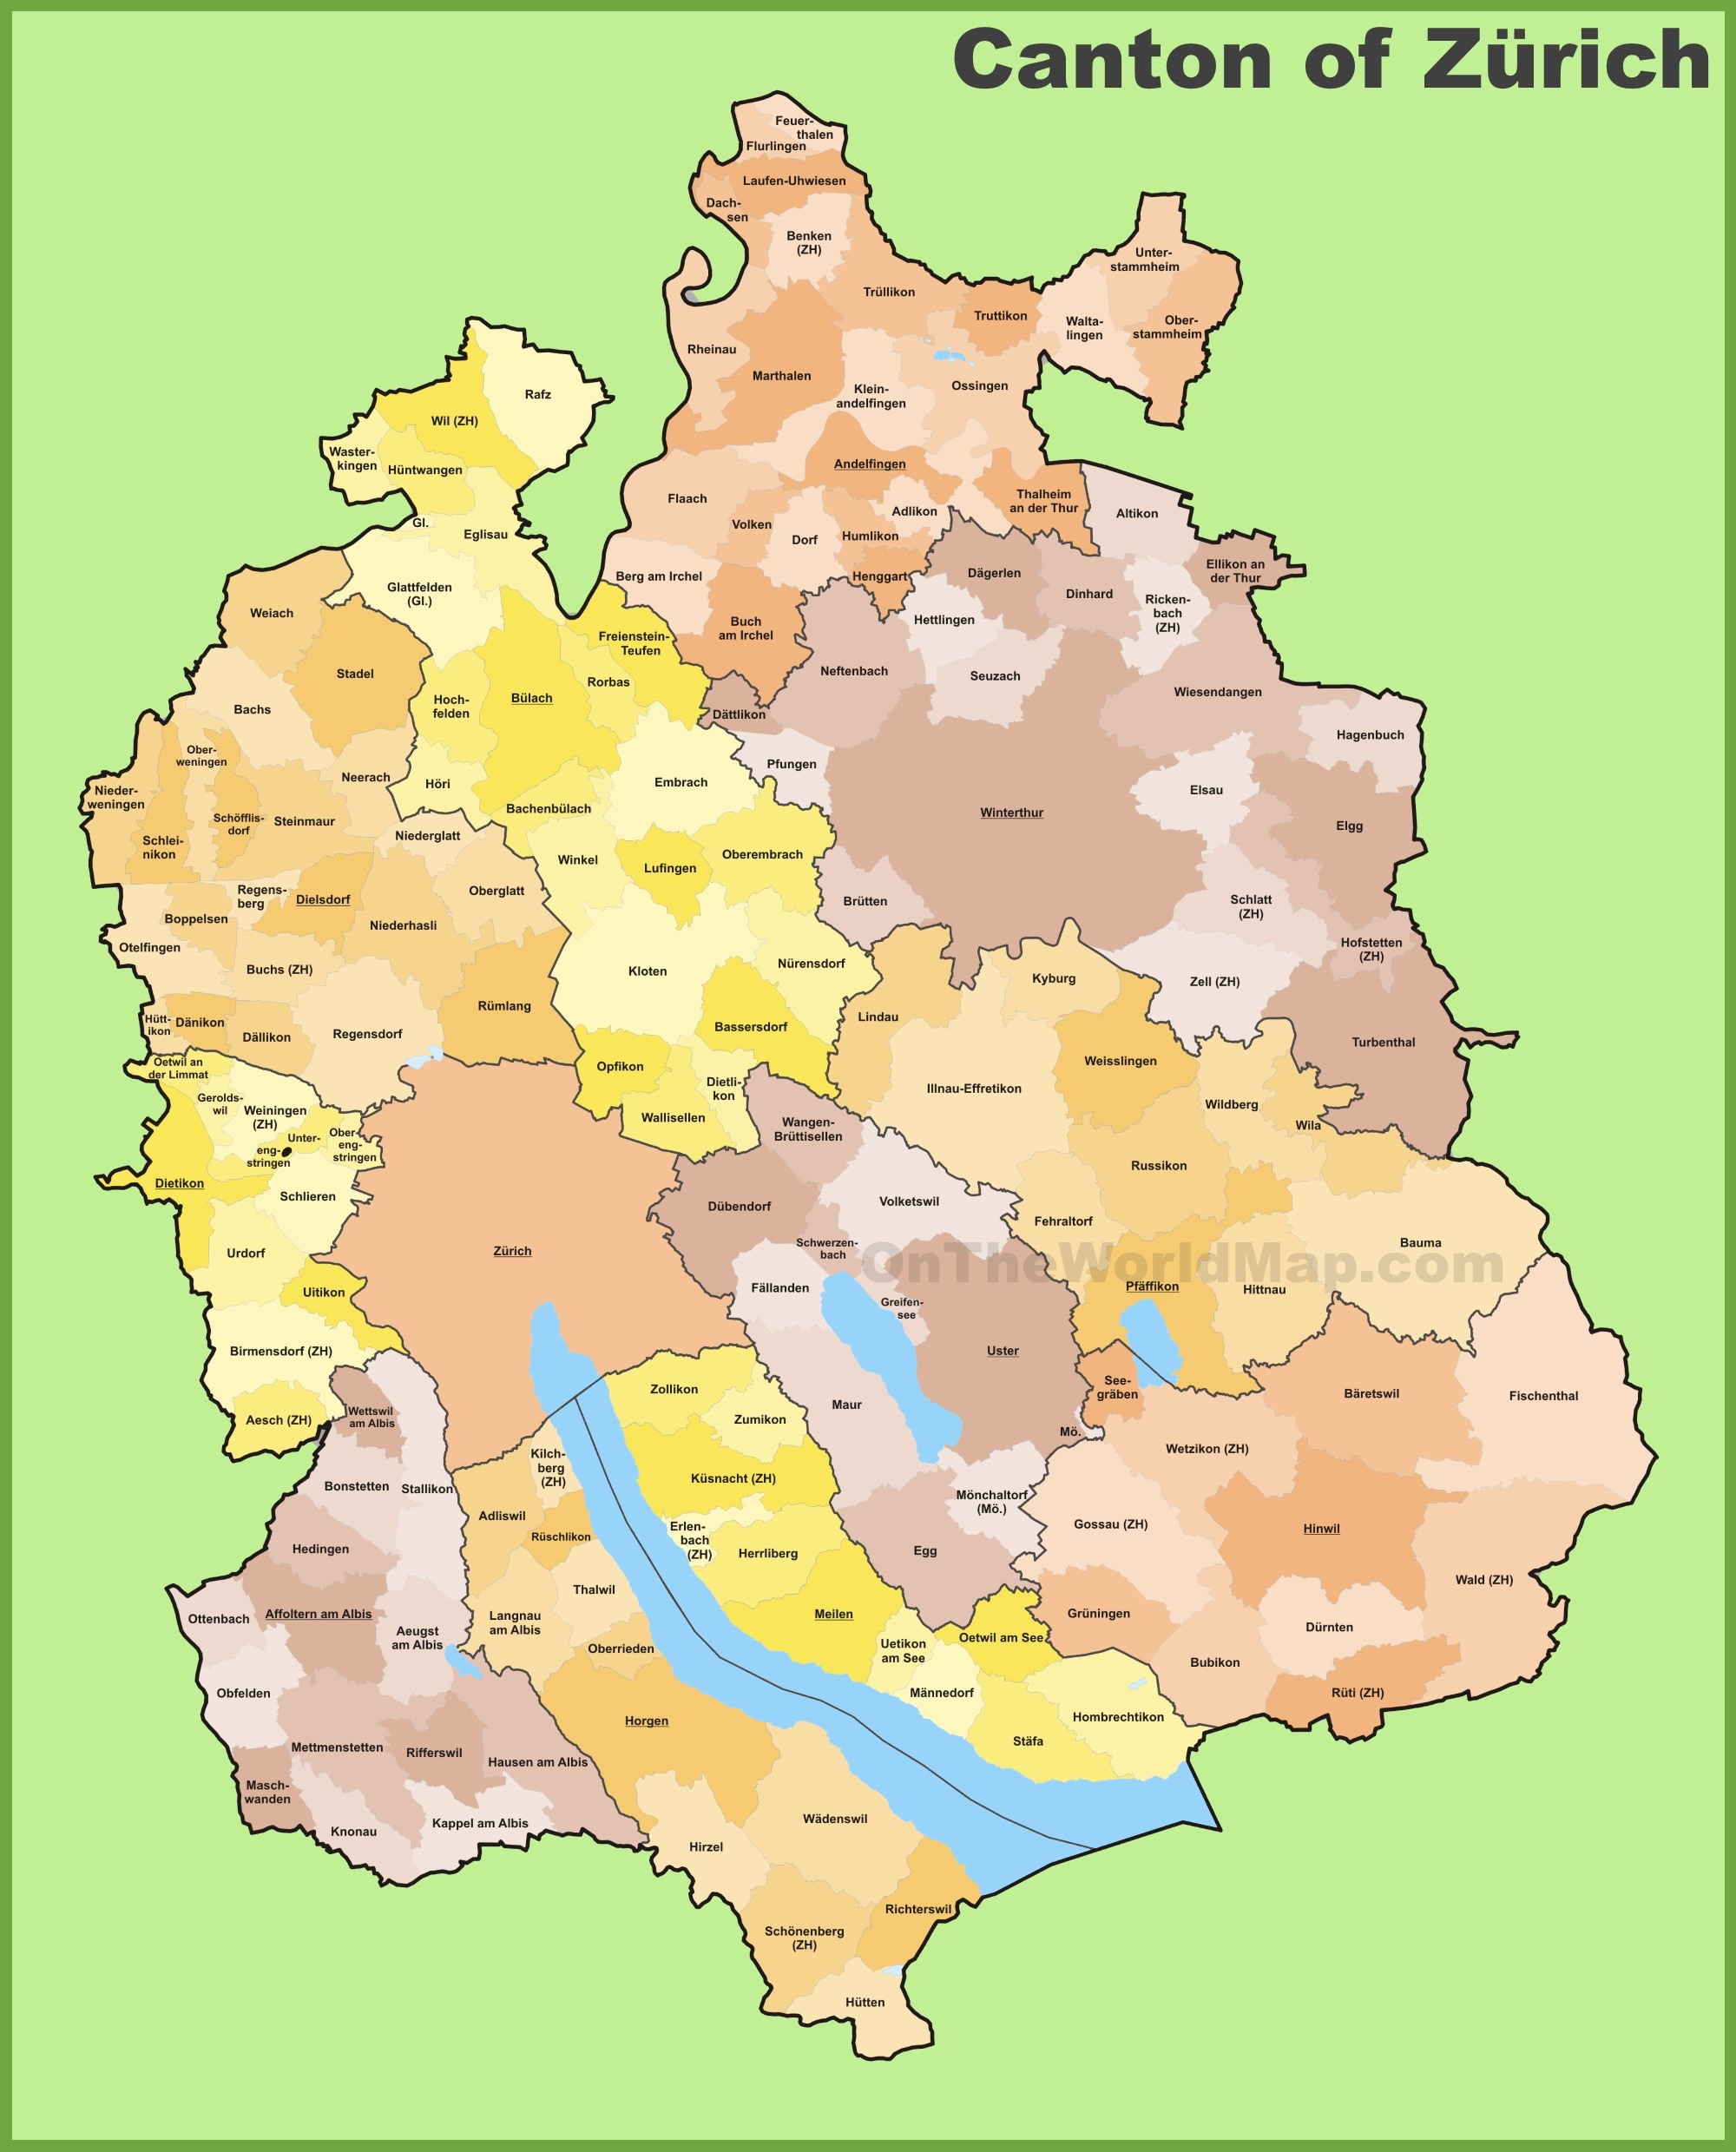 Canton of Zrich municipality map